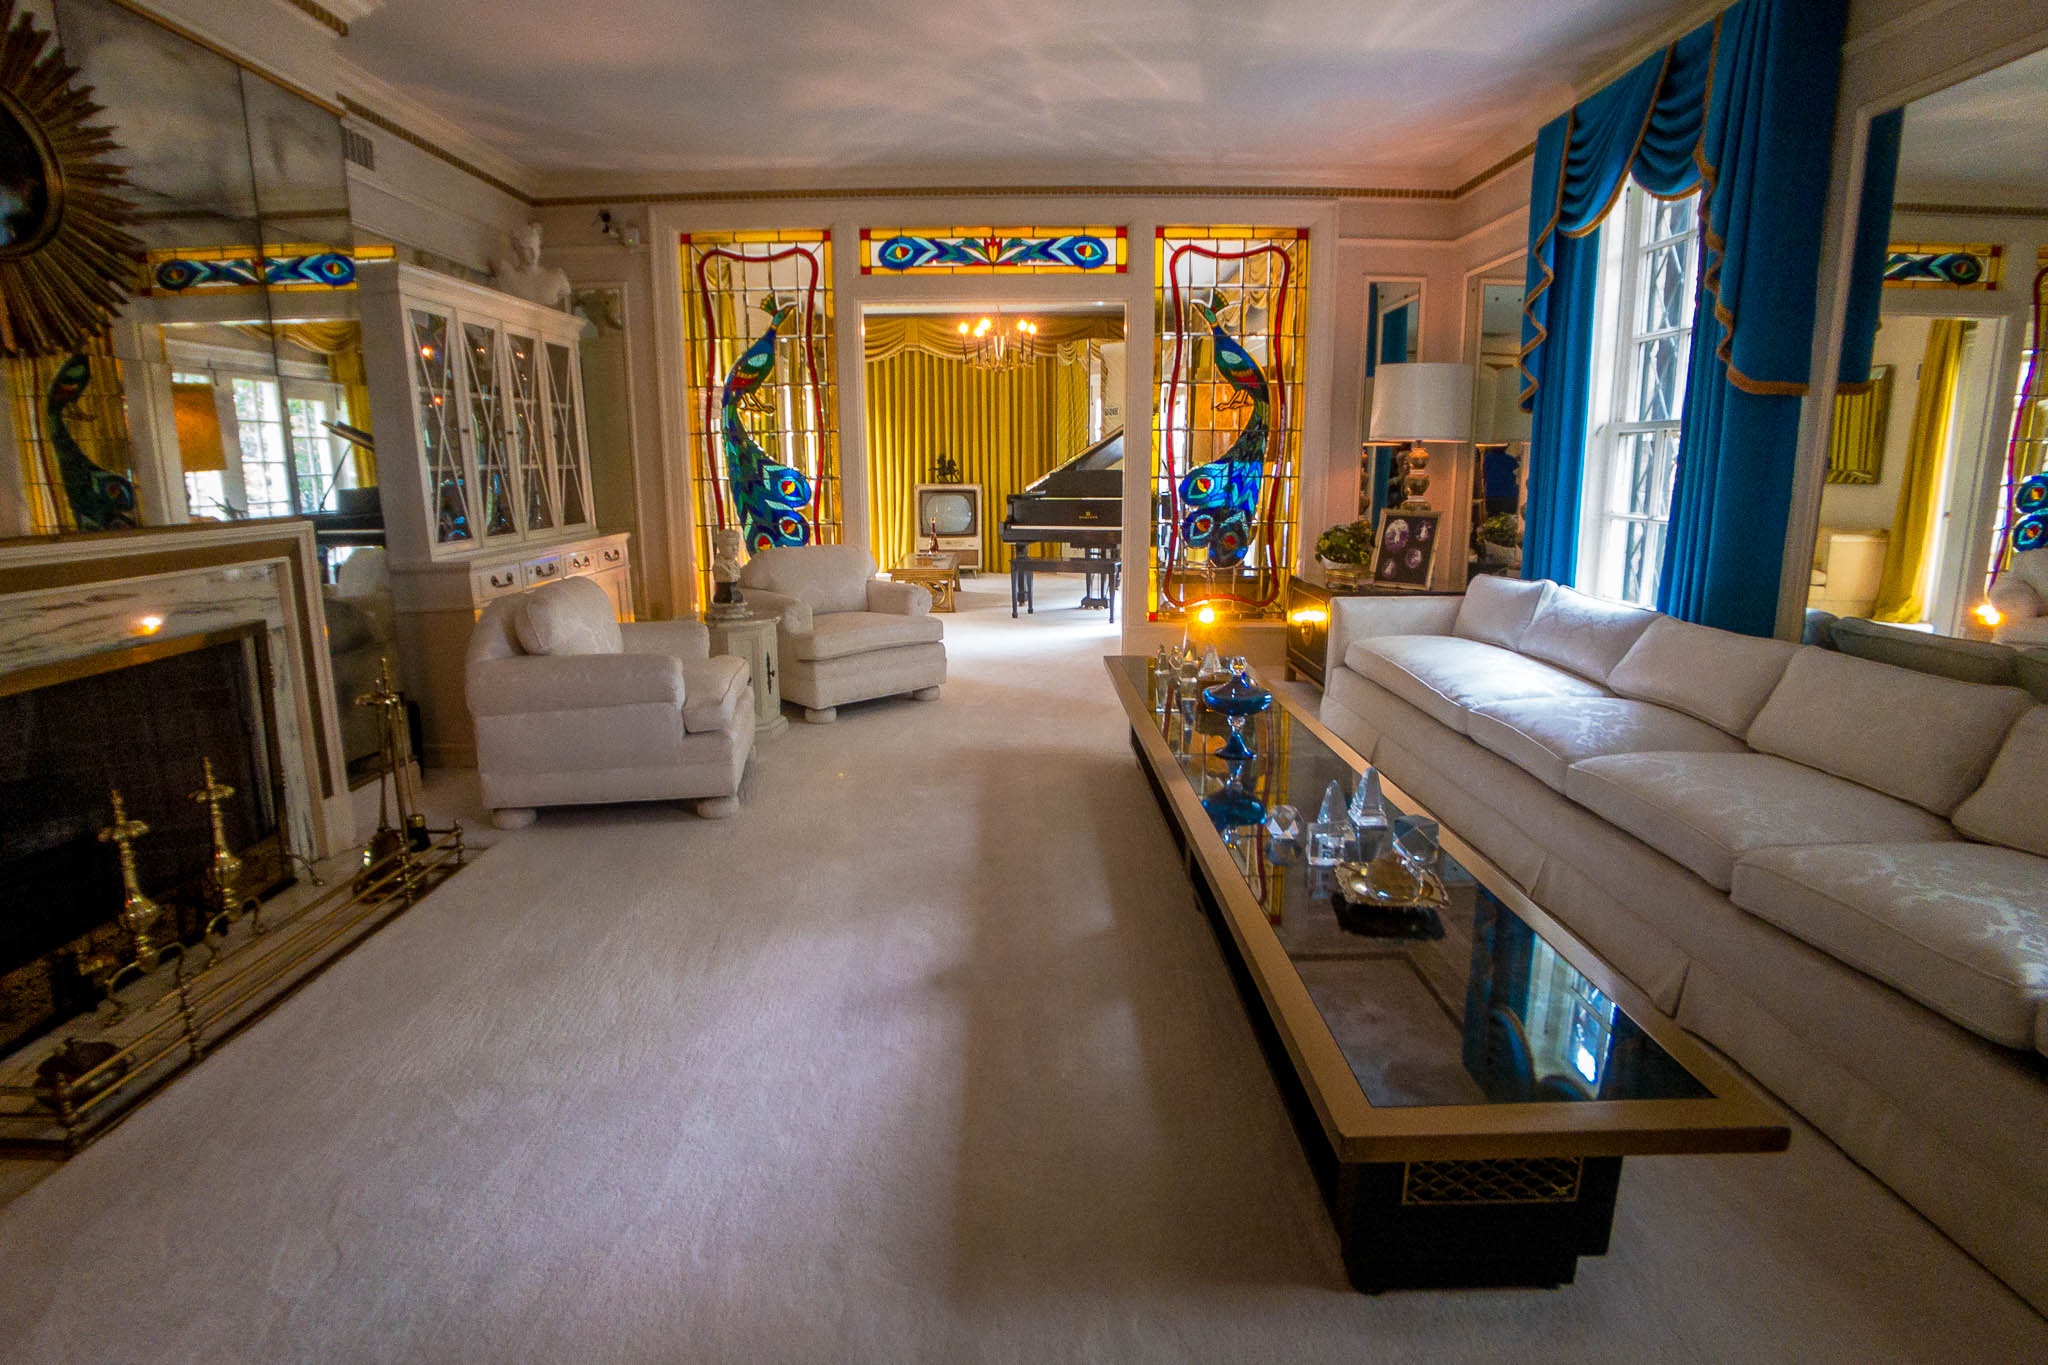 The living room at Elvis Presley's Graceland